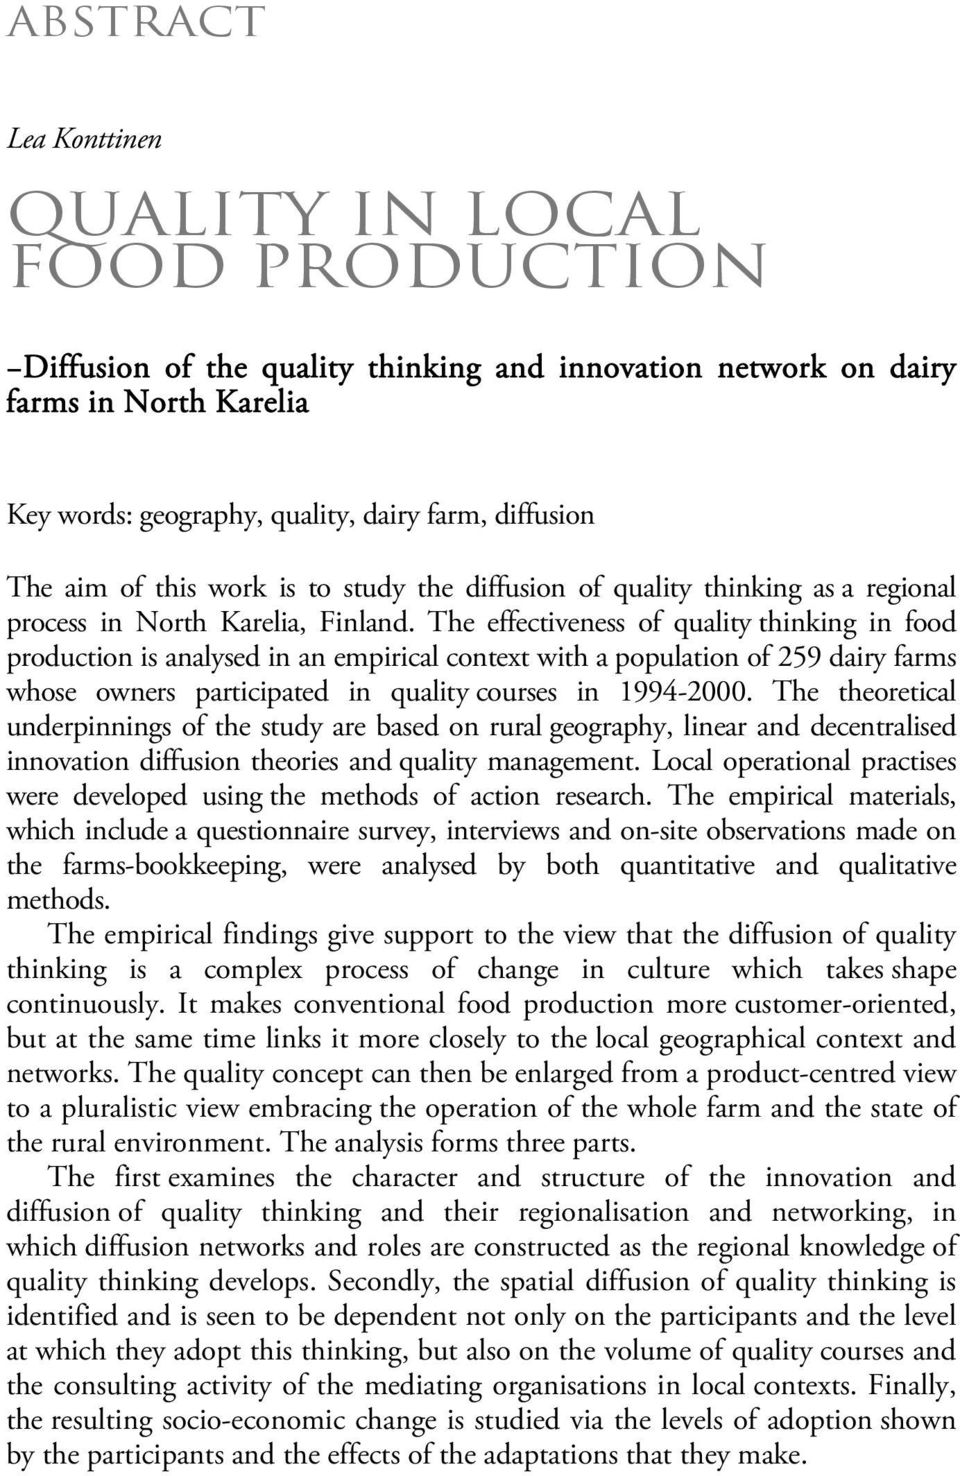 The effectiveness of quality thinking in food production is analysed in an empirical context with a population of 259 dairy farms whose owners participated in quality courses in 1994-2000.